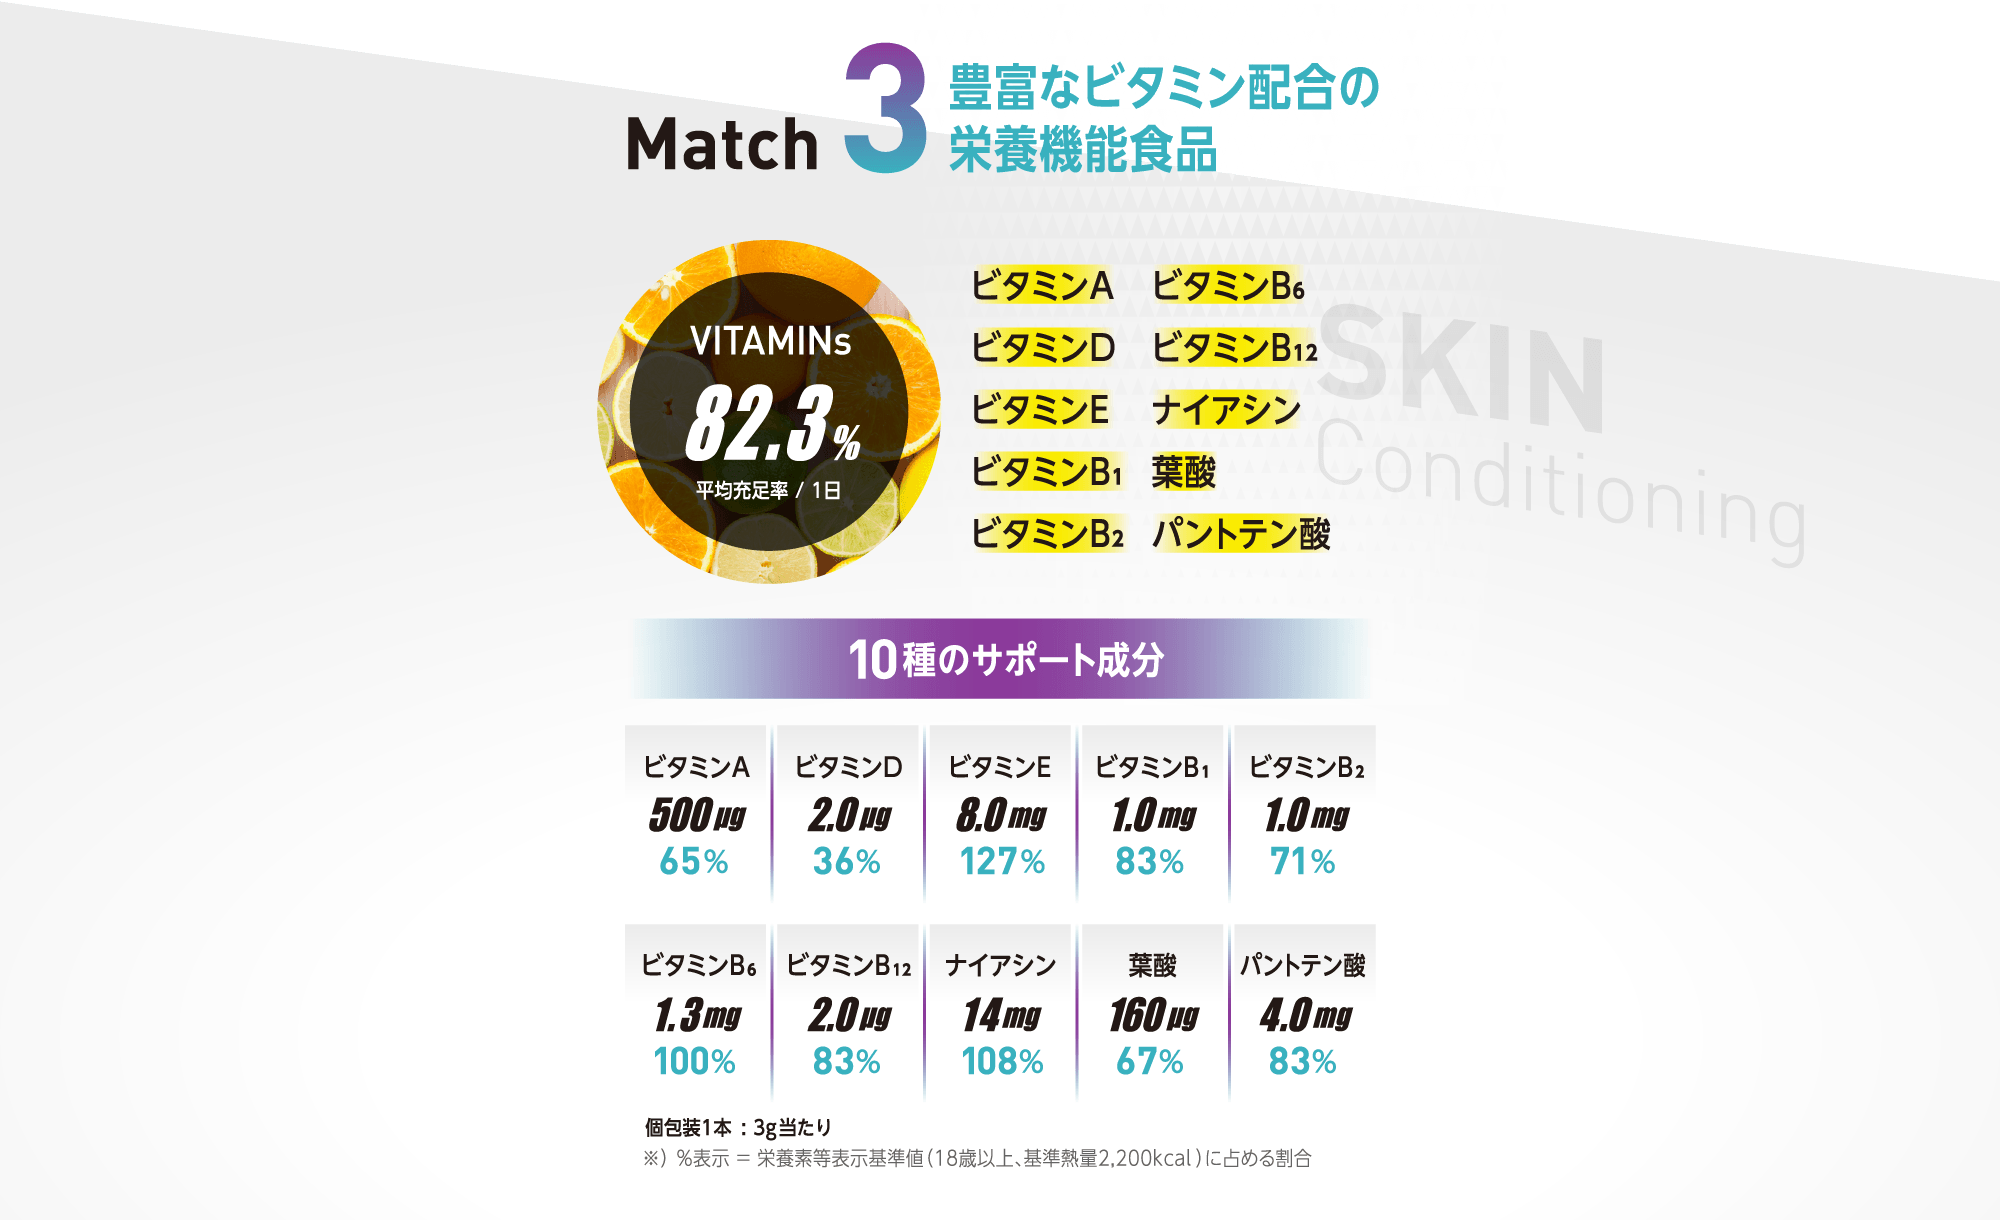 BEAUTYmatch48000は豊富なビタミンも配合した栄養機能食品です。。1日分の平均充足率82.3%